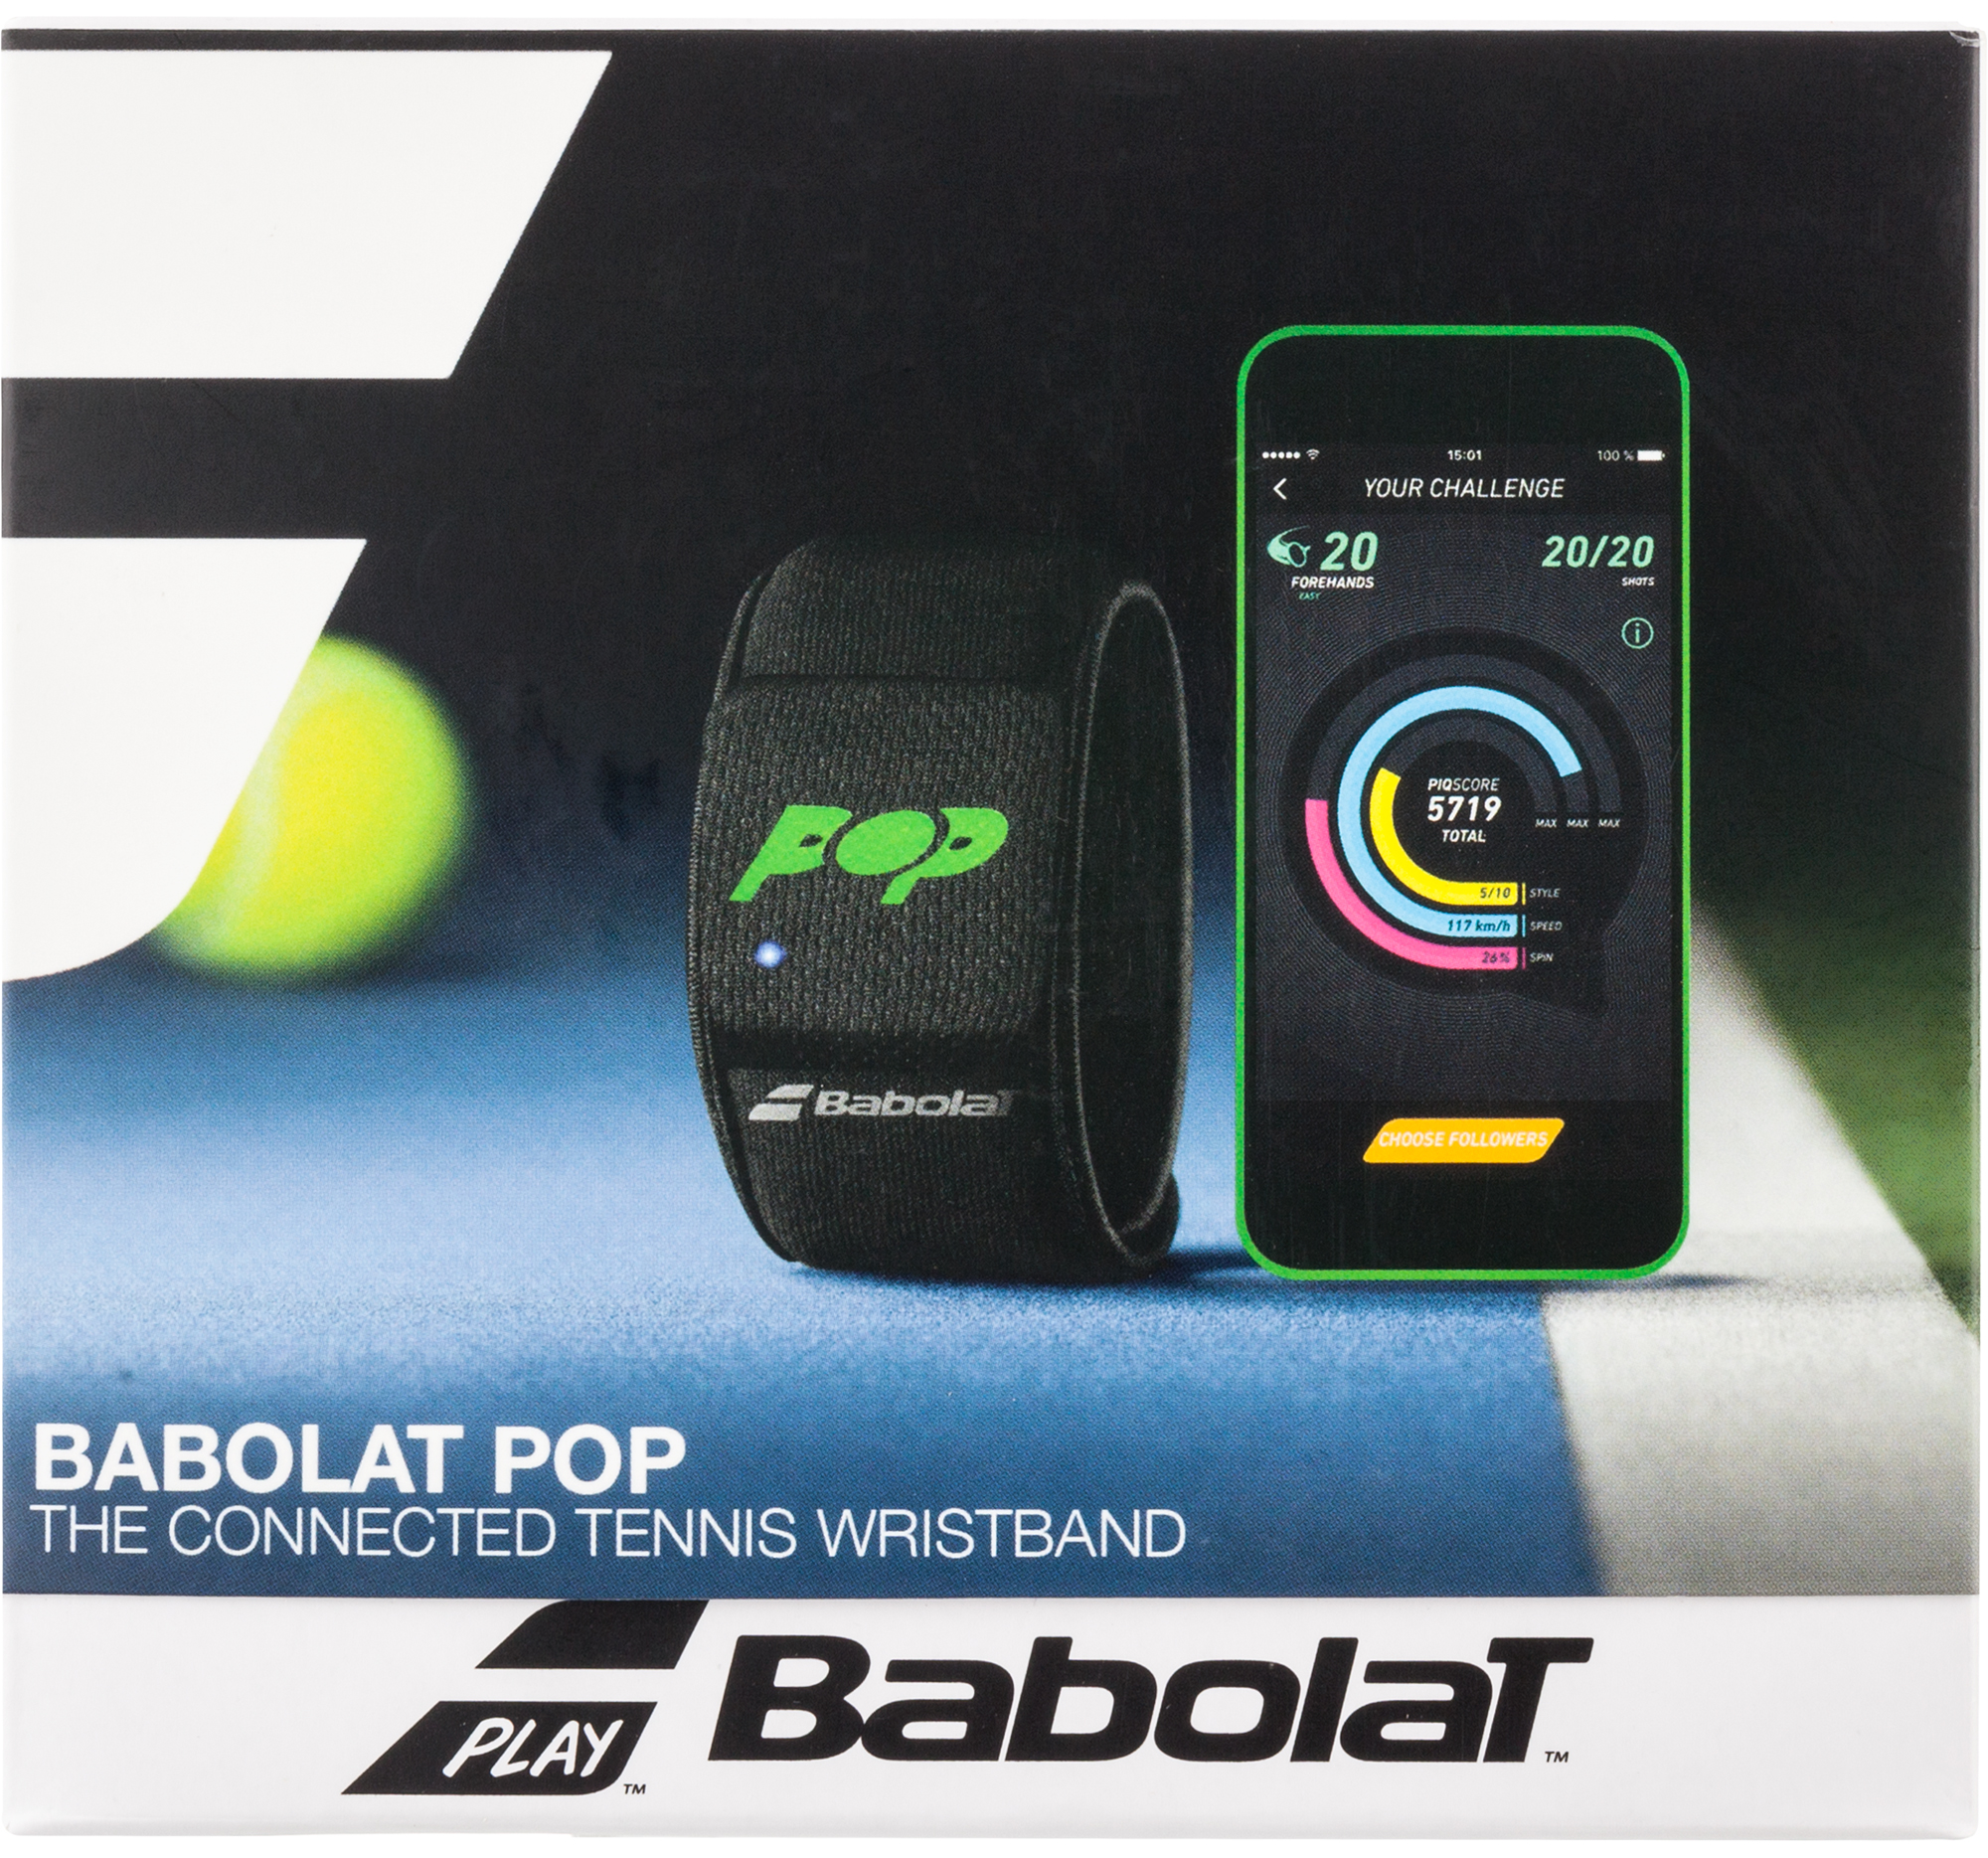 Babolat Теннис-треккер Babolat Connected wristband POP babolat струна babolat origin 12 m